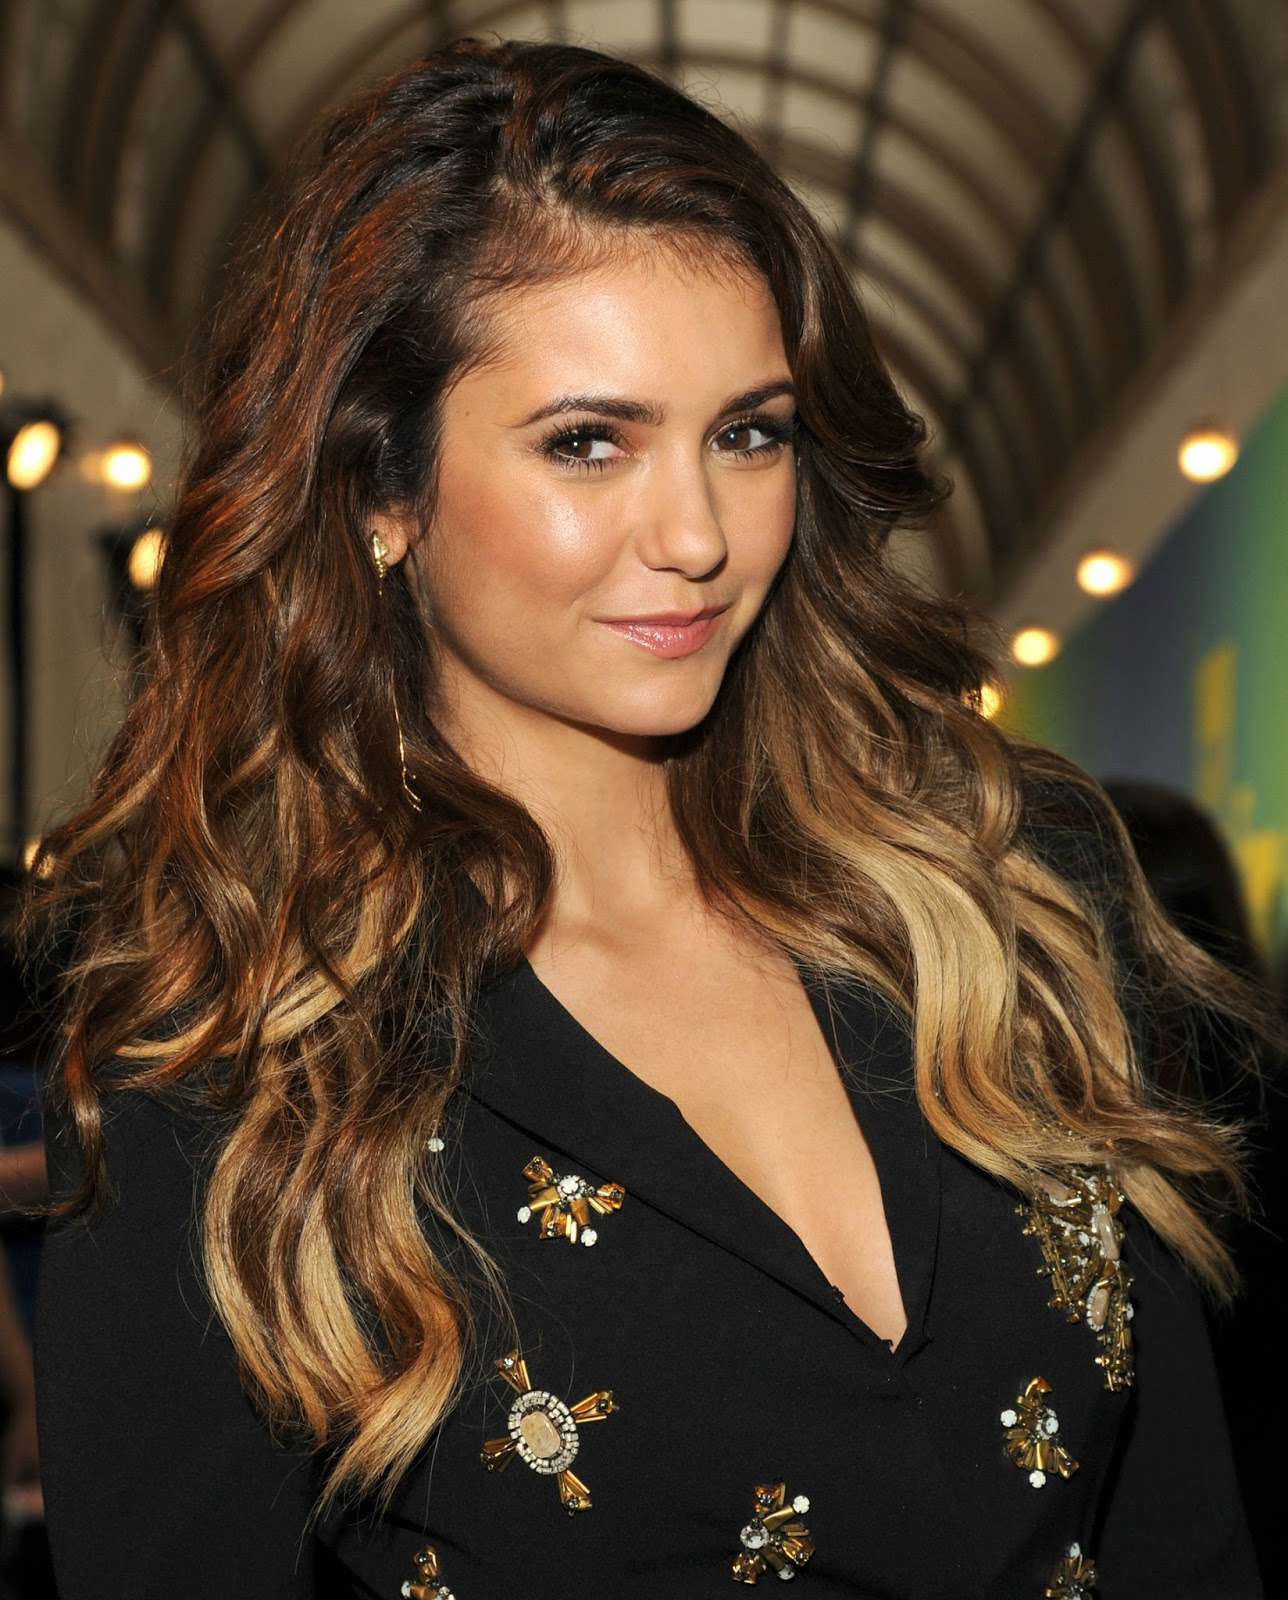 ich will lange gesunde haare wie nina dobrev i want hair like nina dobrev haircare skincare. Black Bedroom Furniture Sets. Home Design Ideas